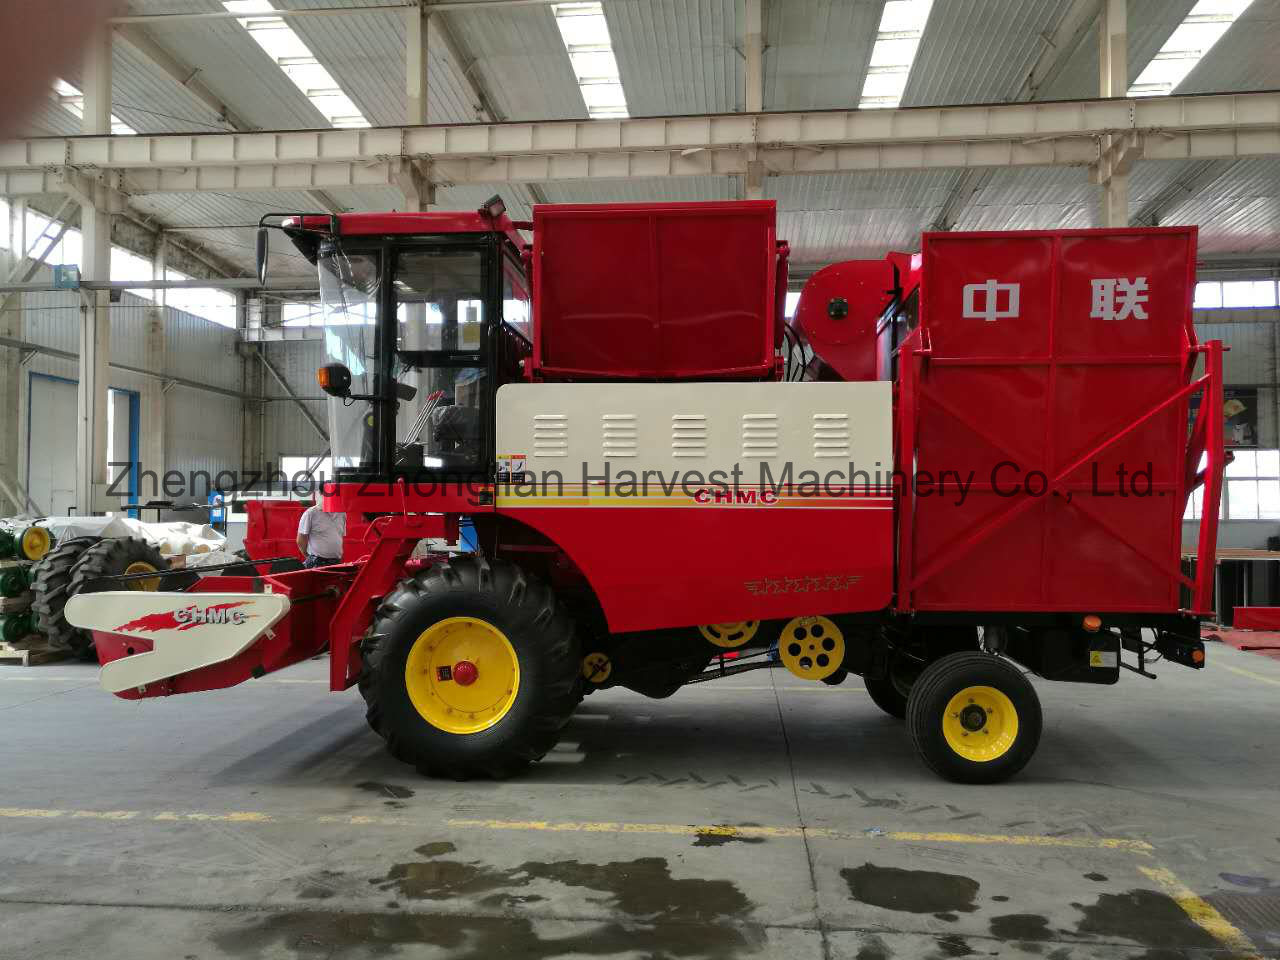 2500 mm Cutter Width Harvester for Peanut Collecting